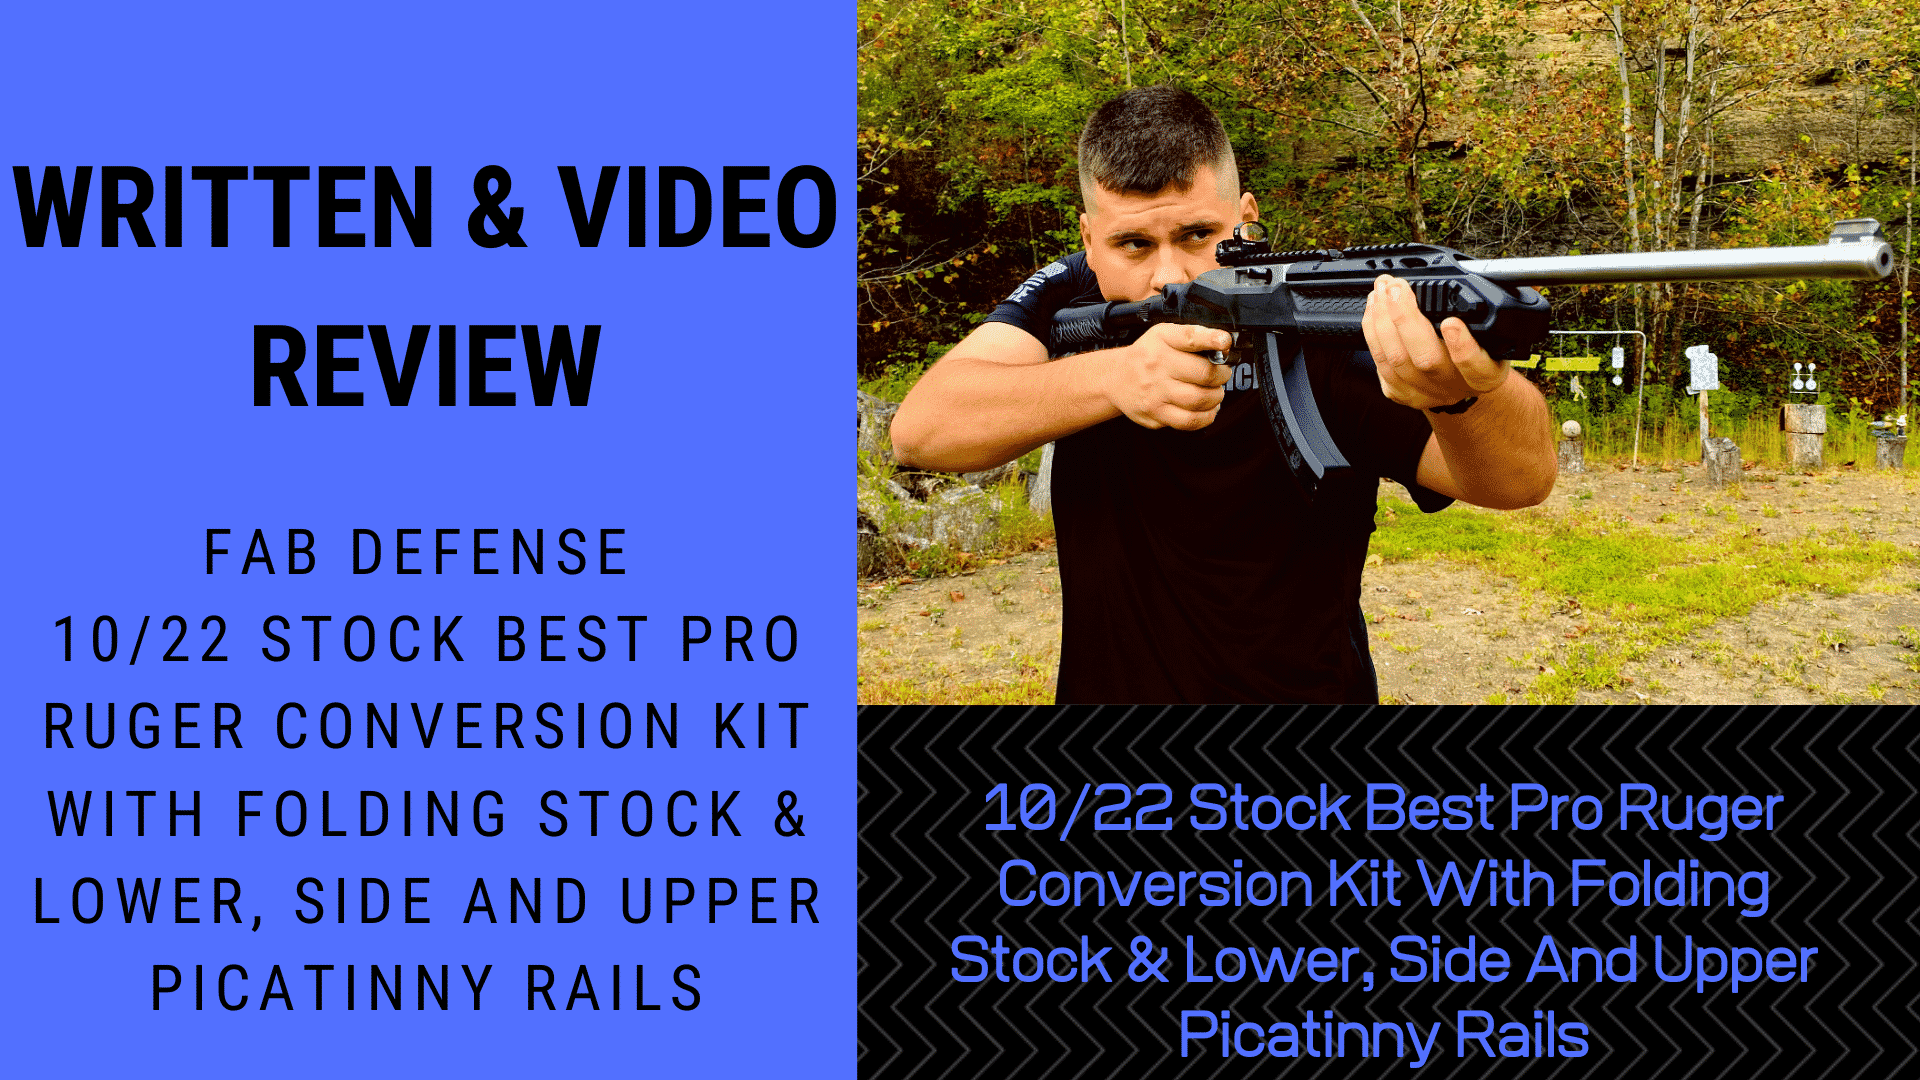 Written & Video Reivew 1022 Stock Best Pro Ruger Conversion Kit With Folding Stock & Lower, Side And Upper Picatinny Rails